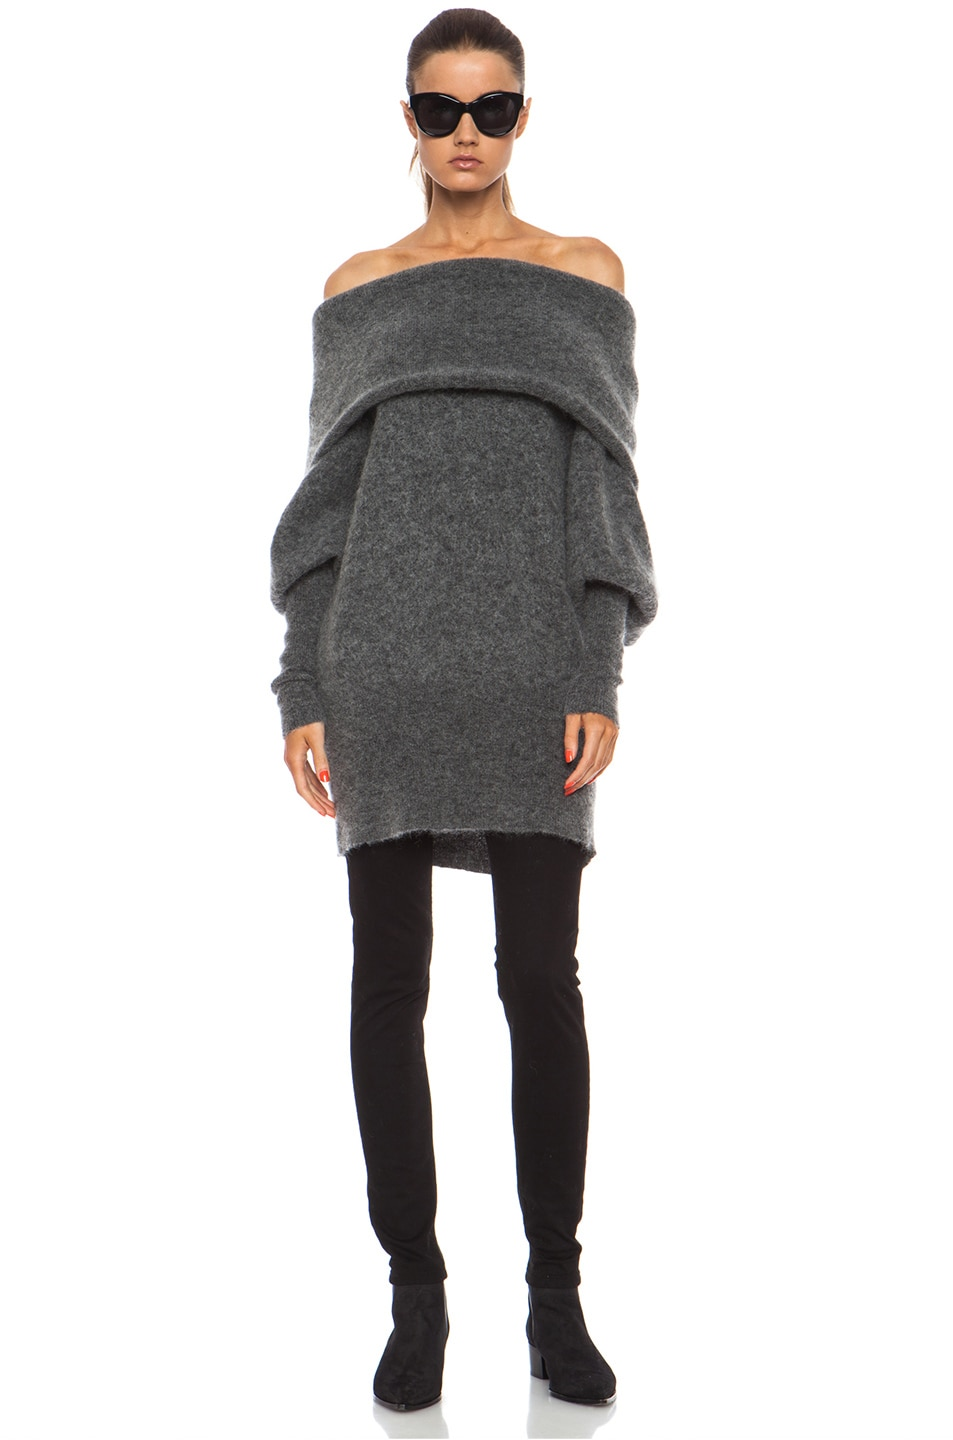 e1a3df499c47 Image 1 of Acne Studios Daze Mohair Sweater in Grey Melange